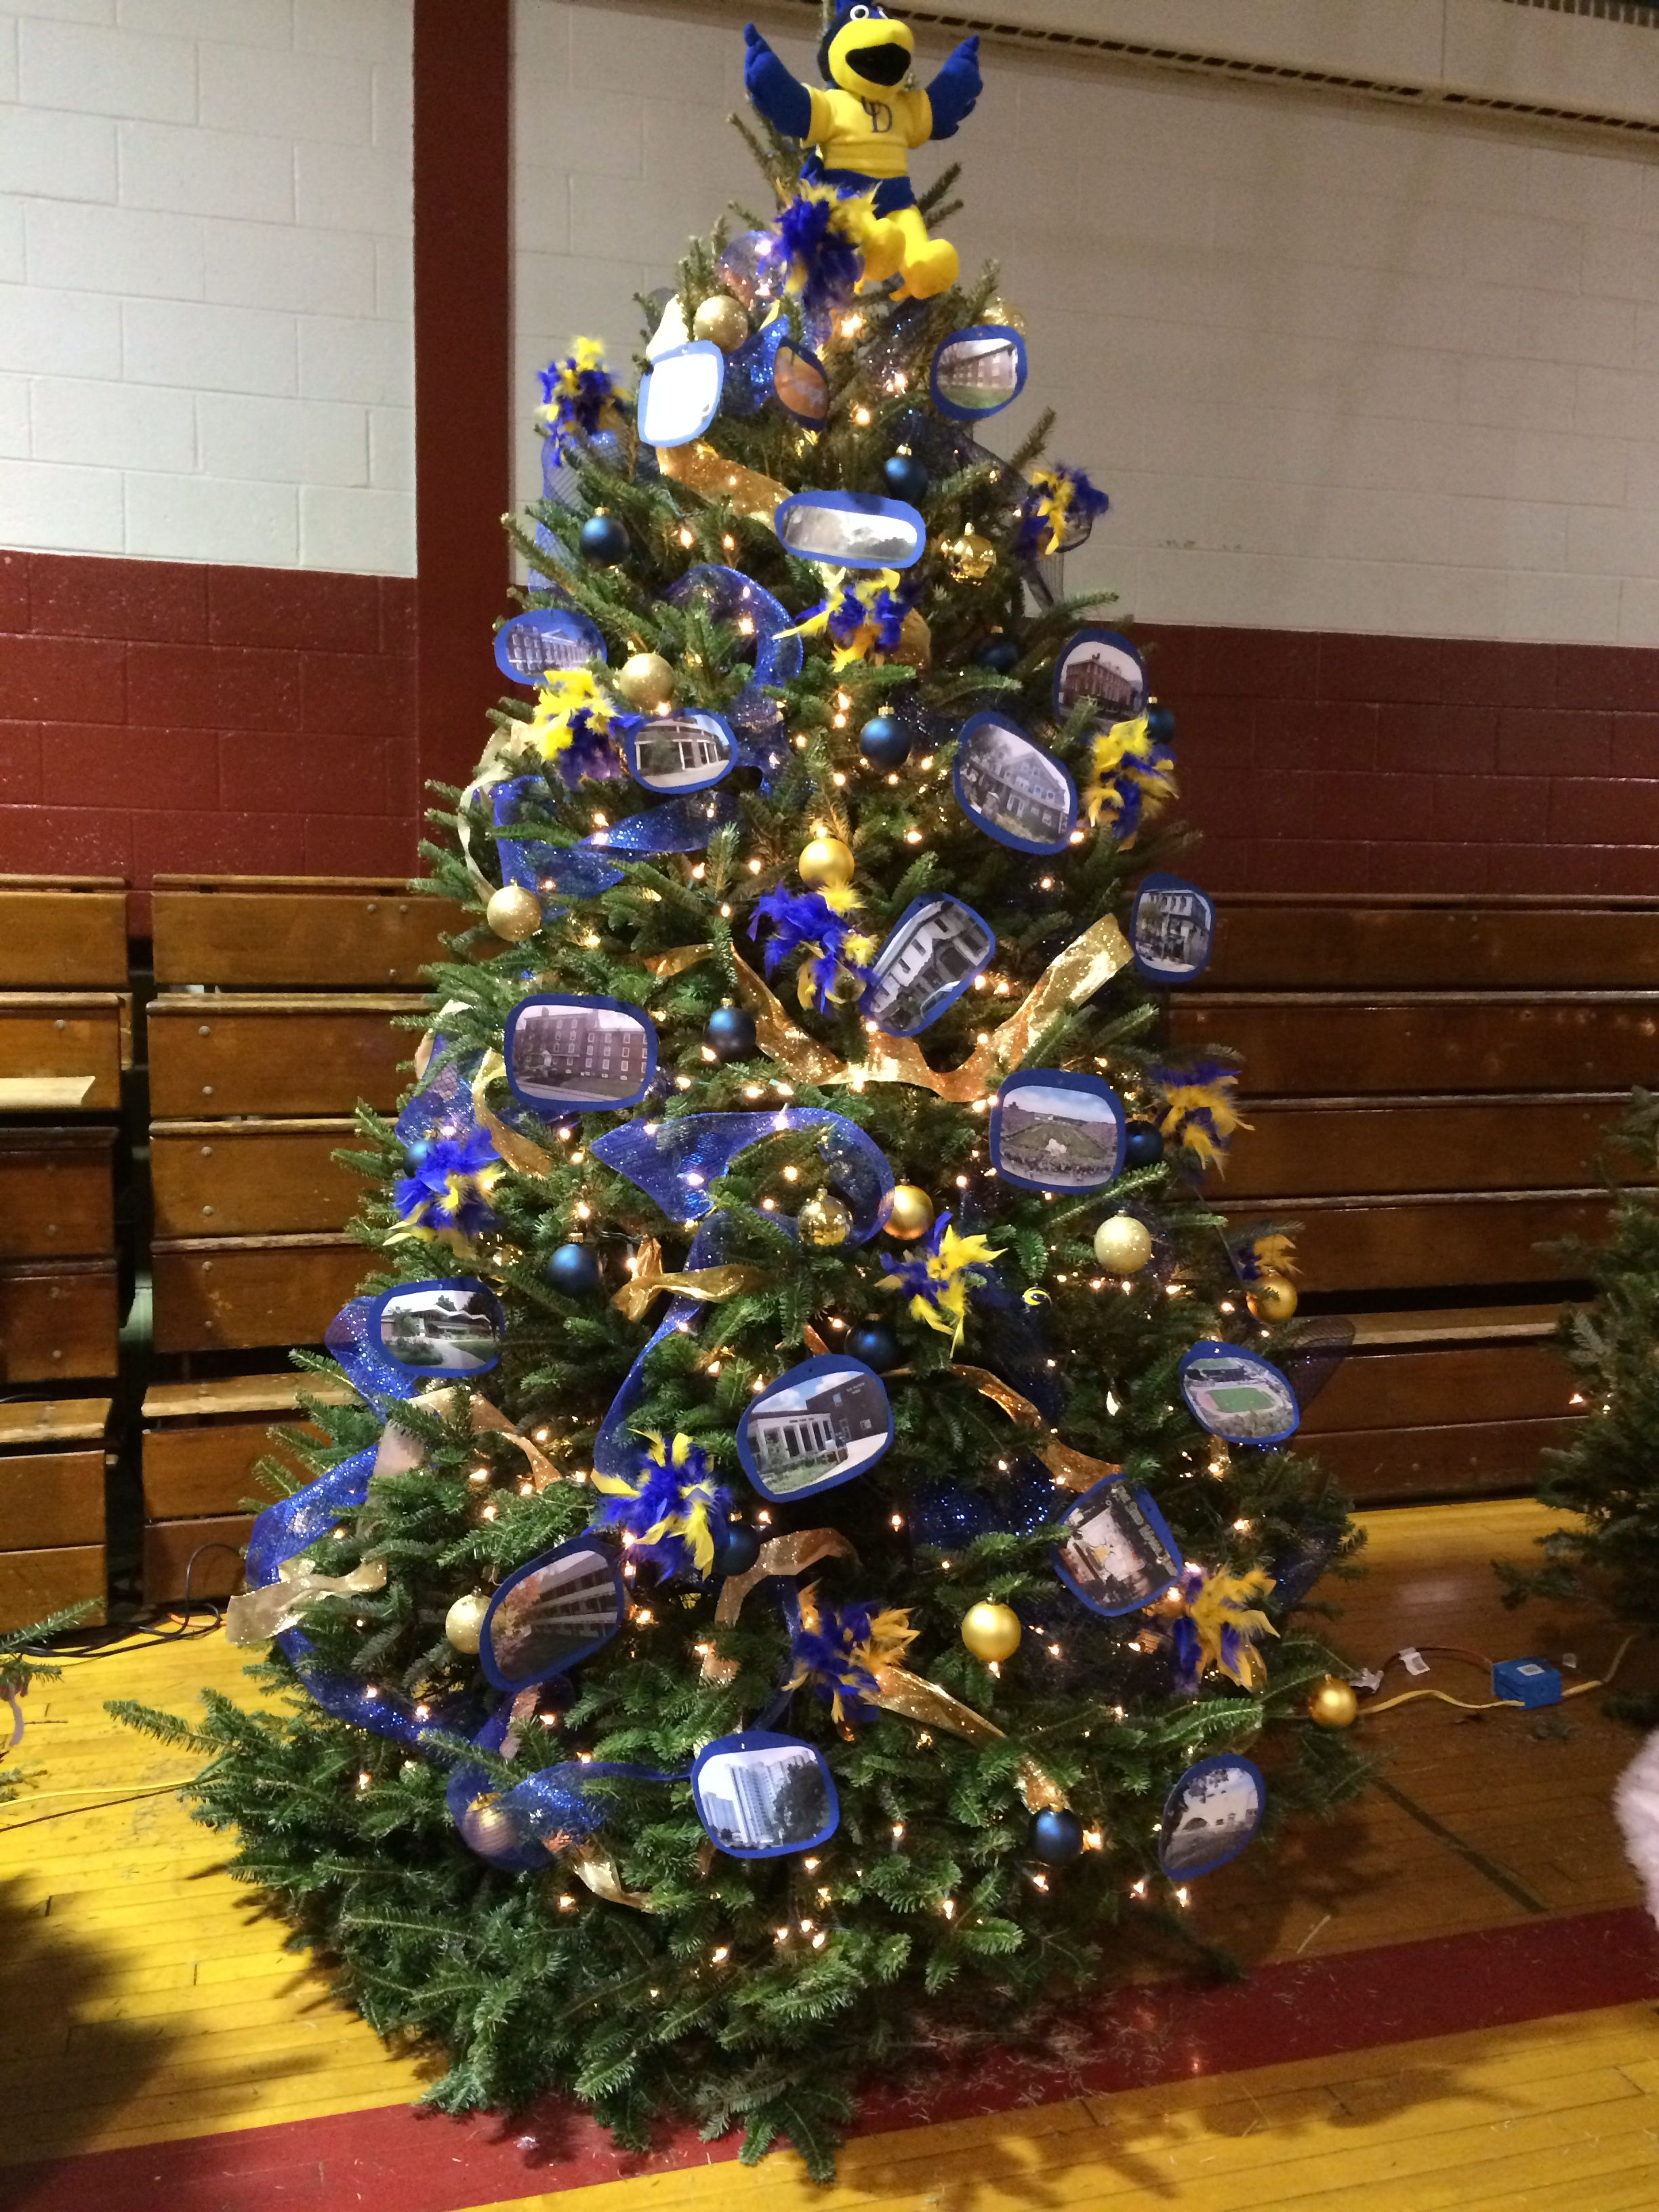 University Of Delaware Themed Christmas Tree For School Tree Decorating Competition 2013 Double Creative Christmas Trees Christmas Tree Themes Christmas Tree